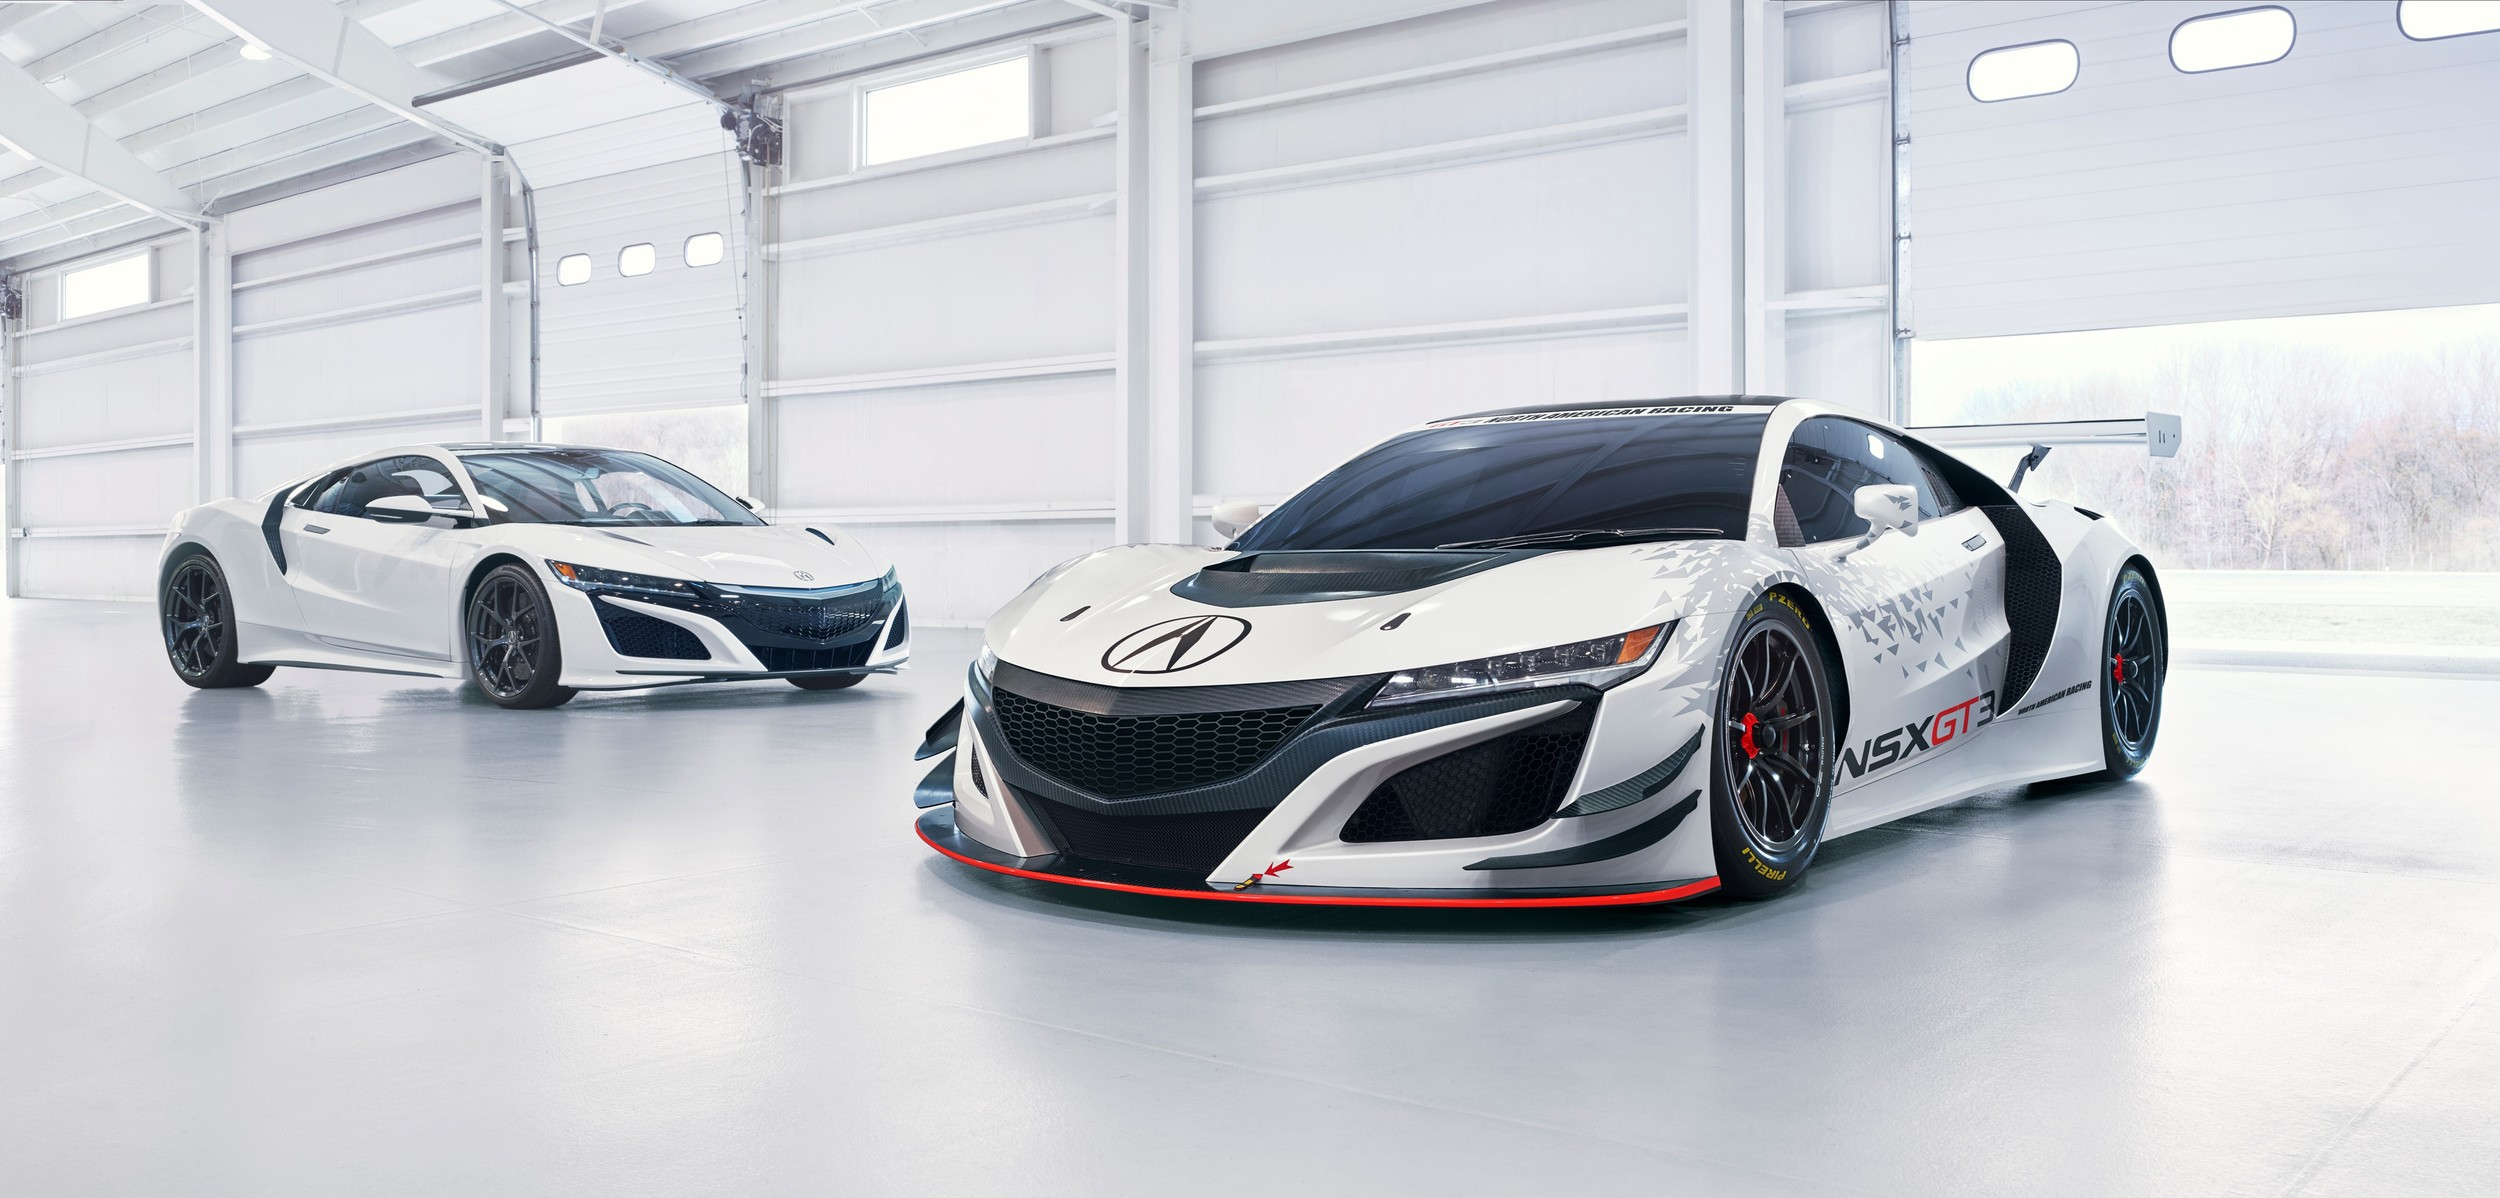 2018 Honda Nsx Gt3 Is One Expensive Way To Go Customer Racing